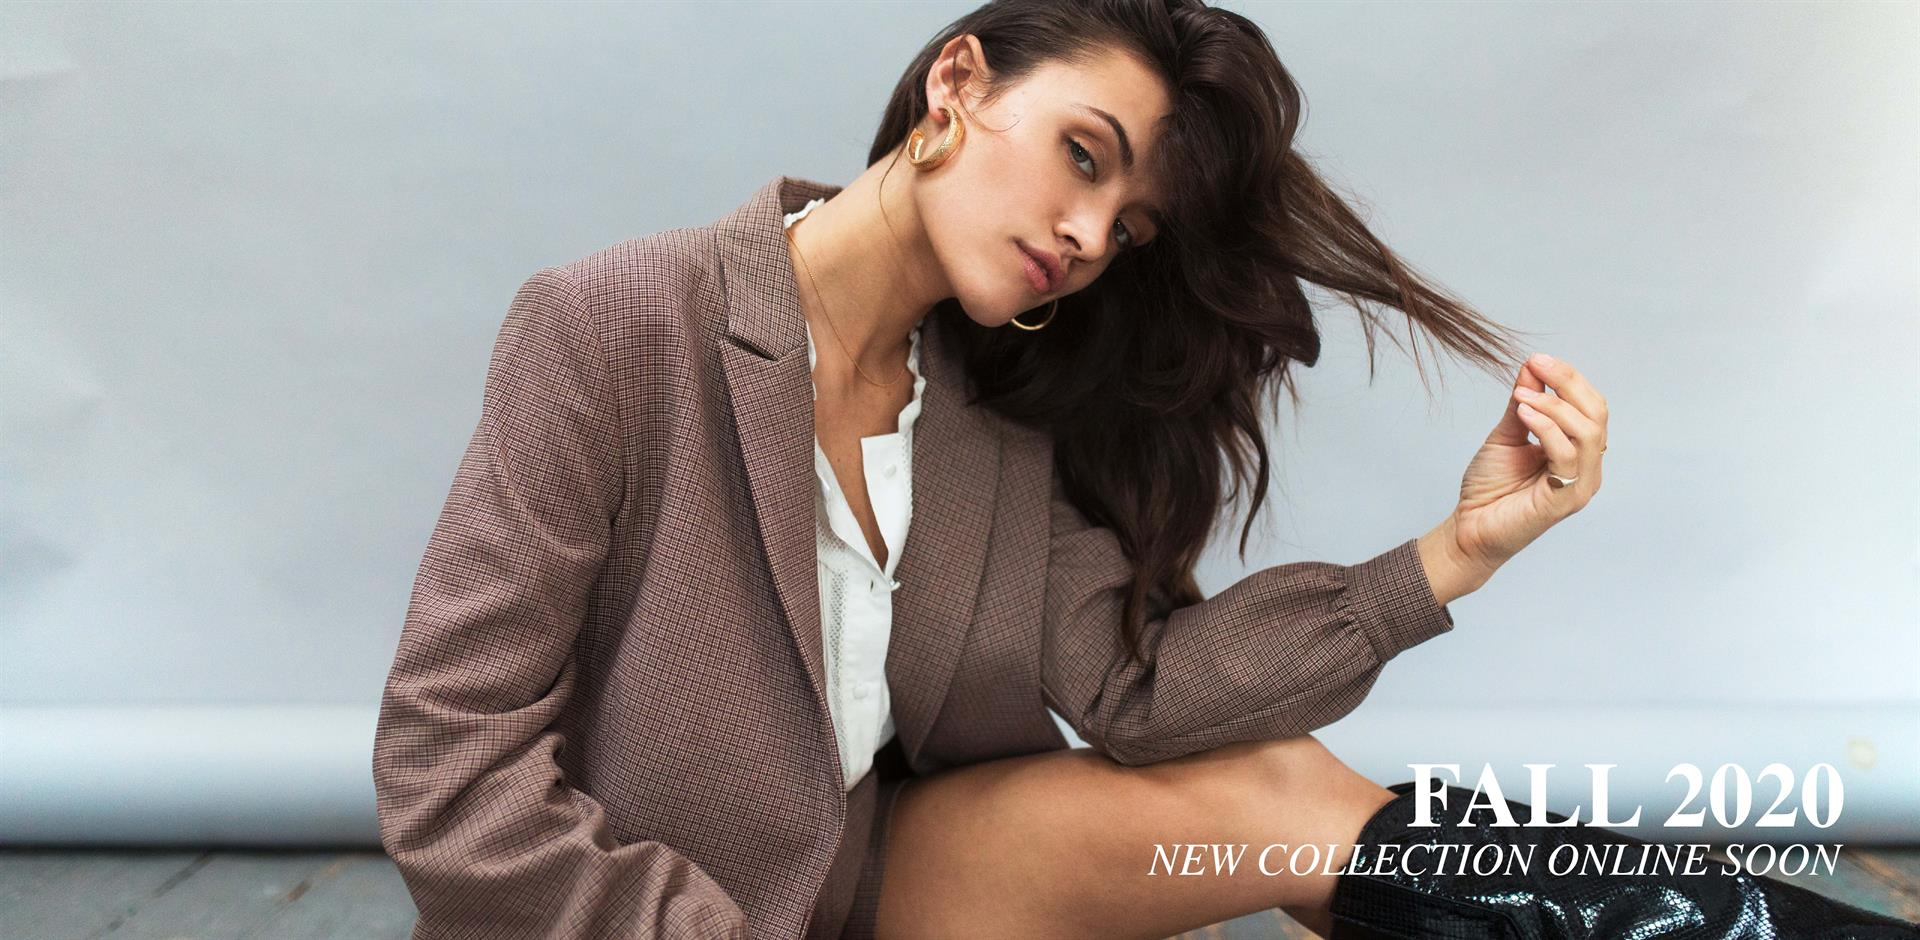 harper and yve campaign make-up by lotte concepts